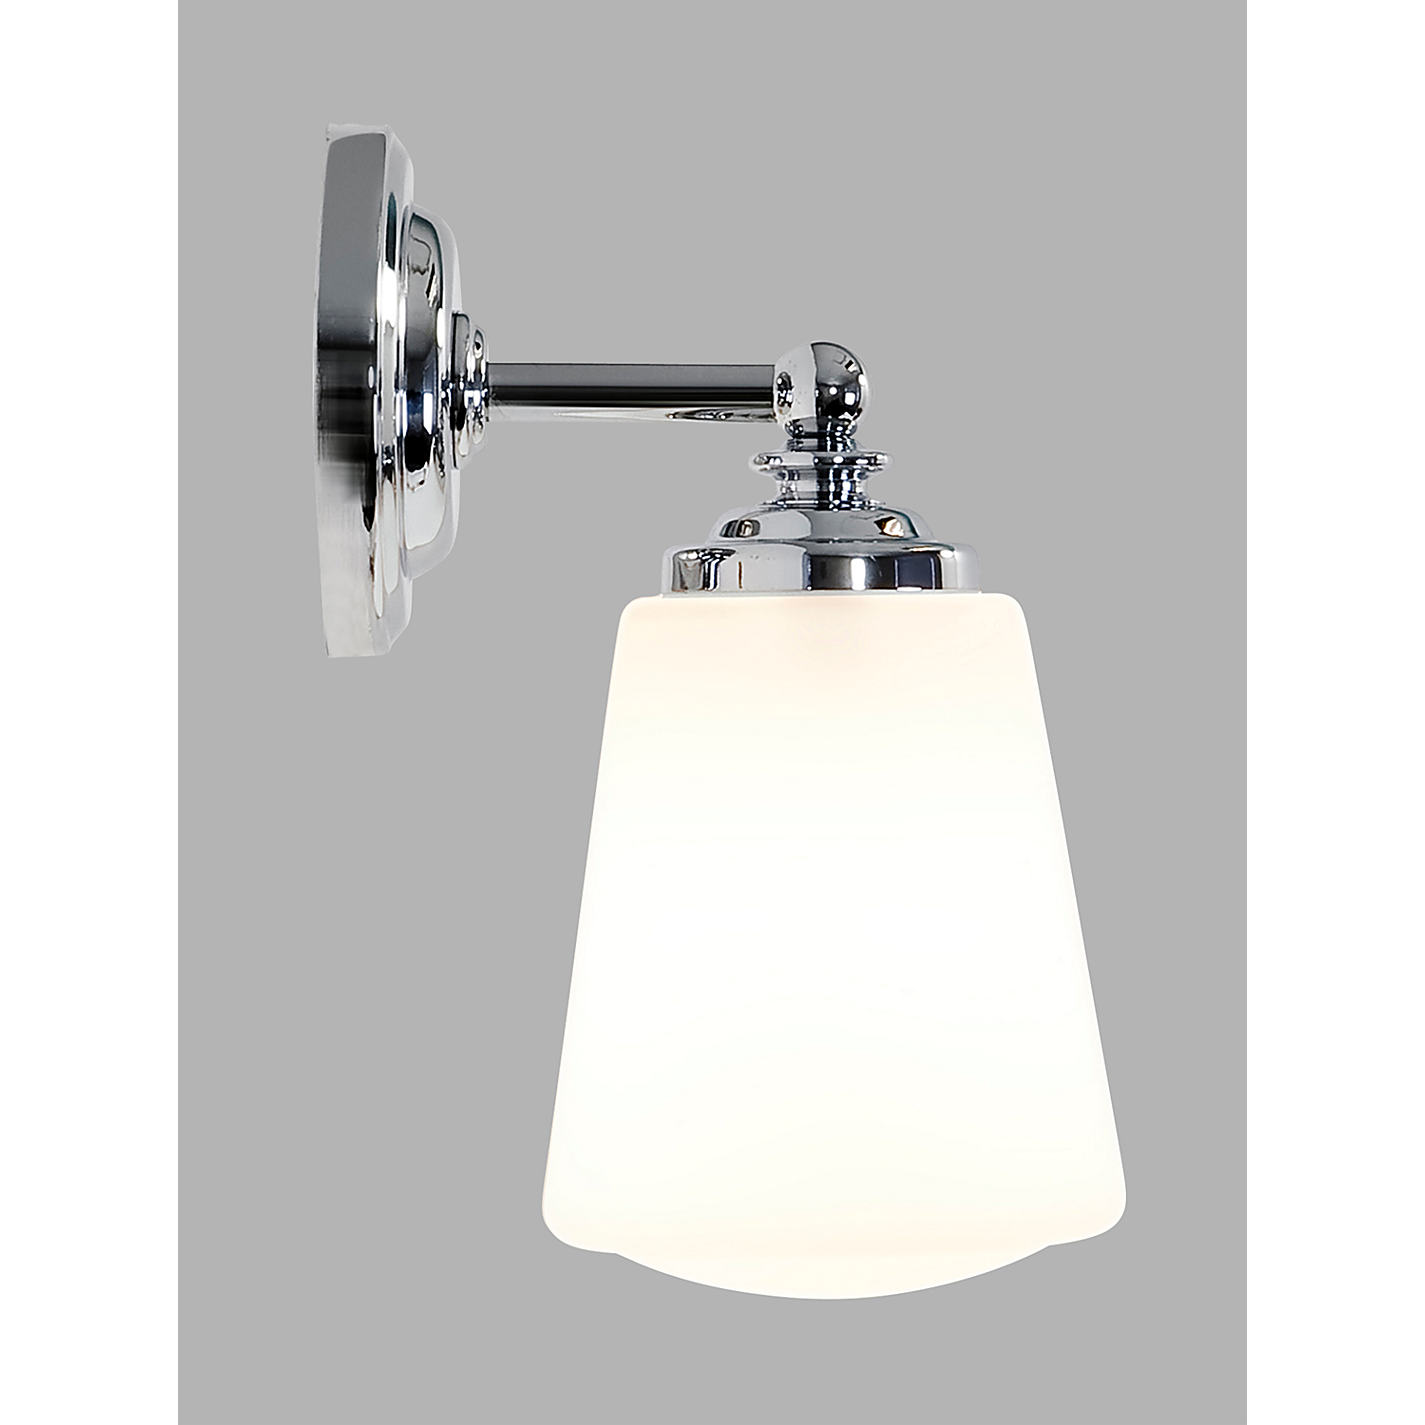 Bathroom Lights John Lewis buy astro anton bathroom wall light | john lewis